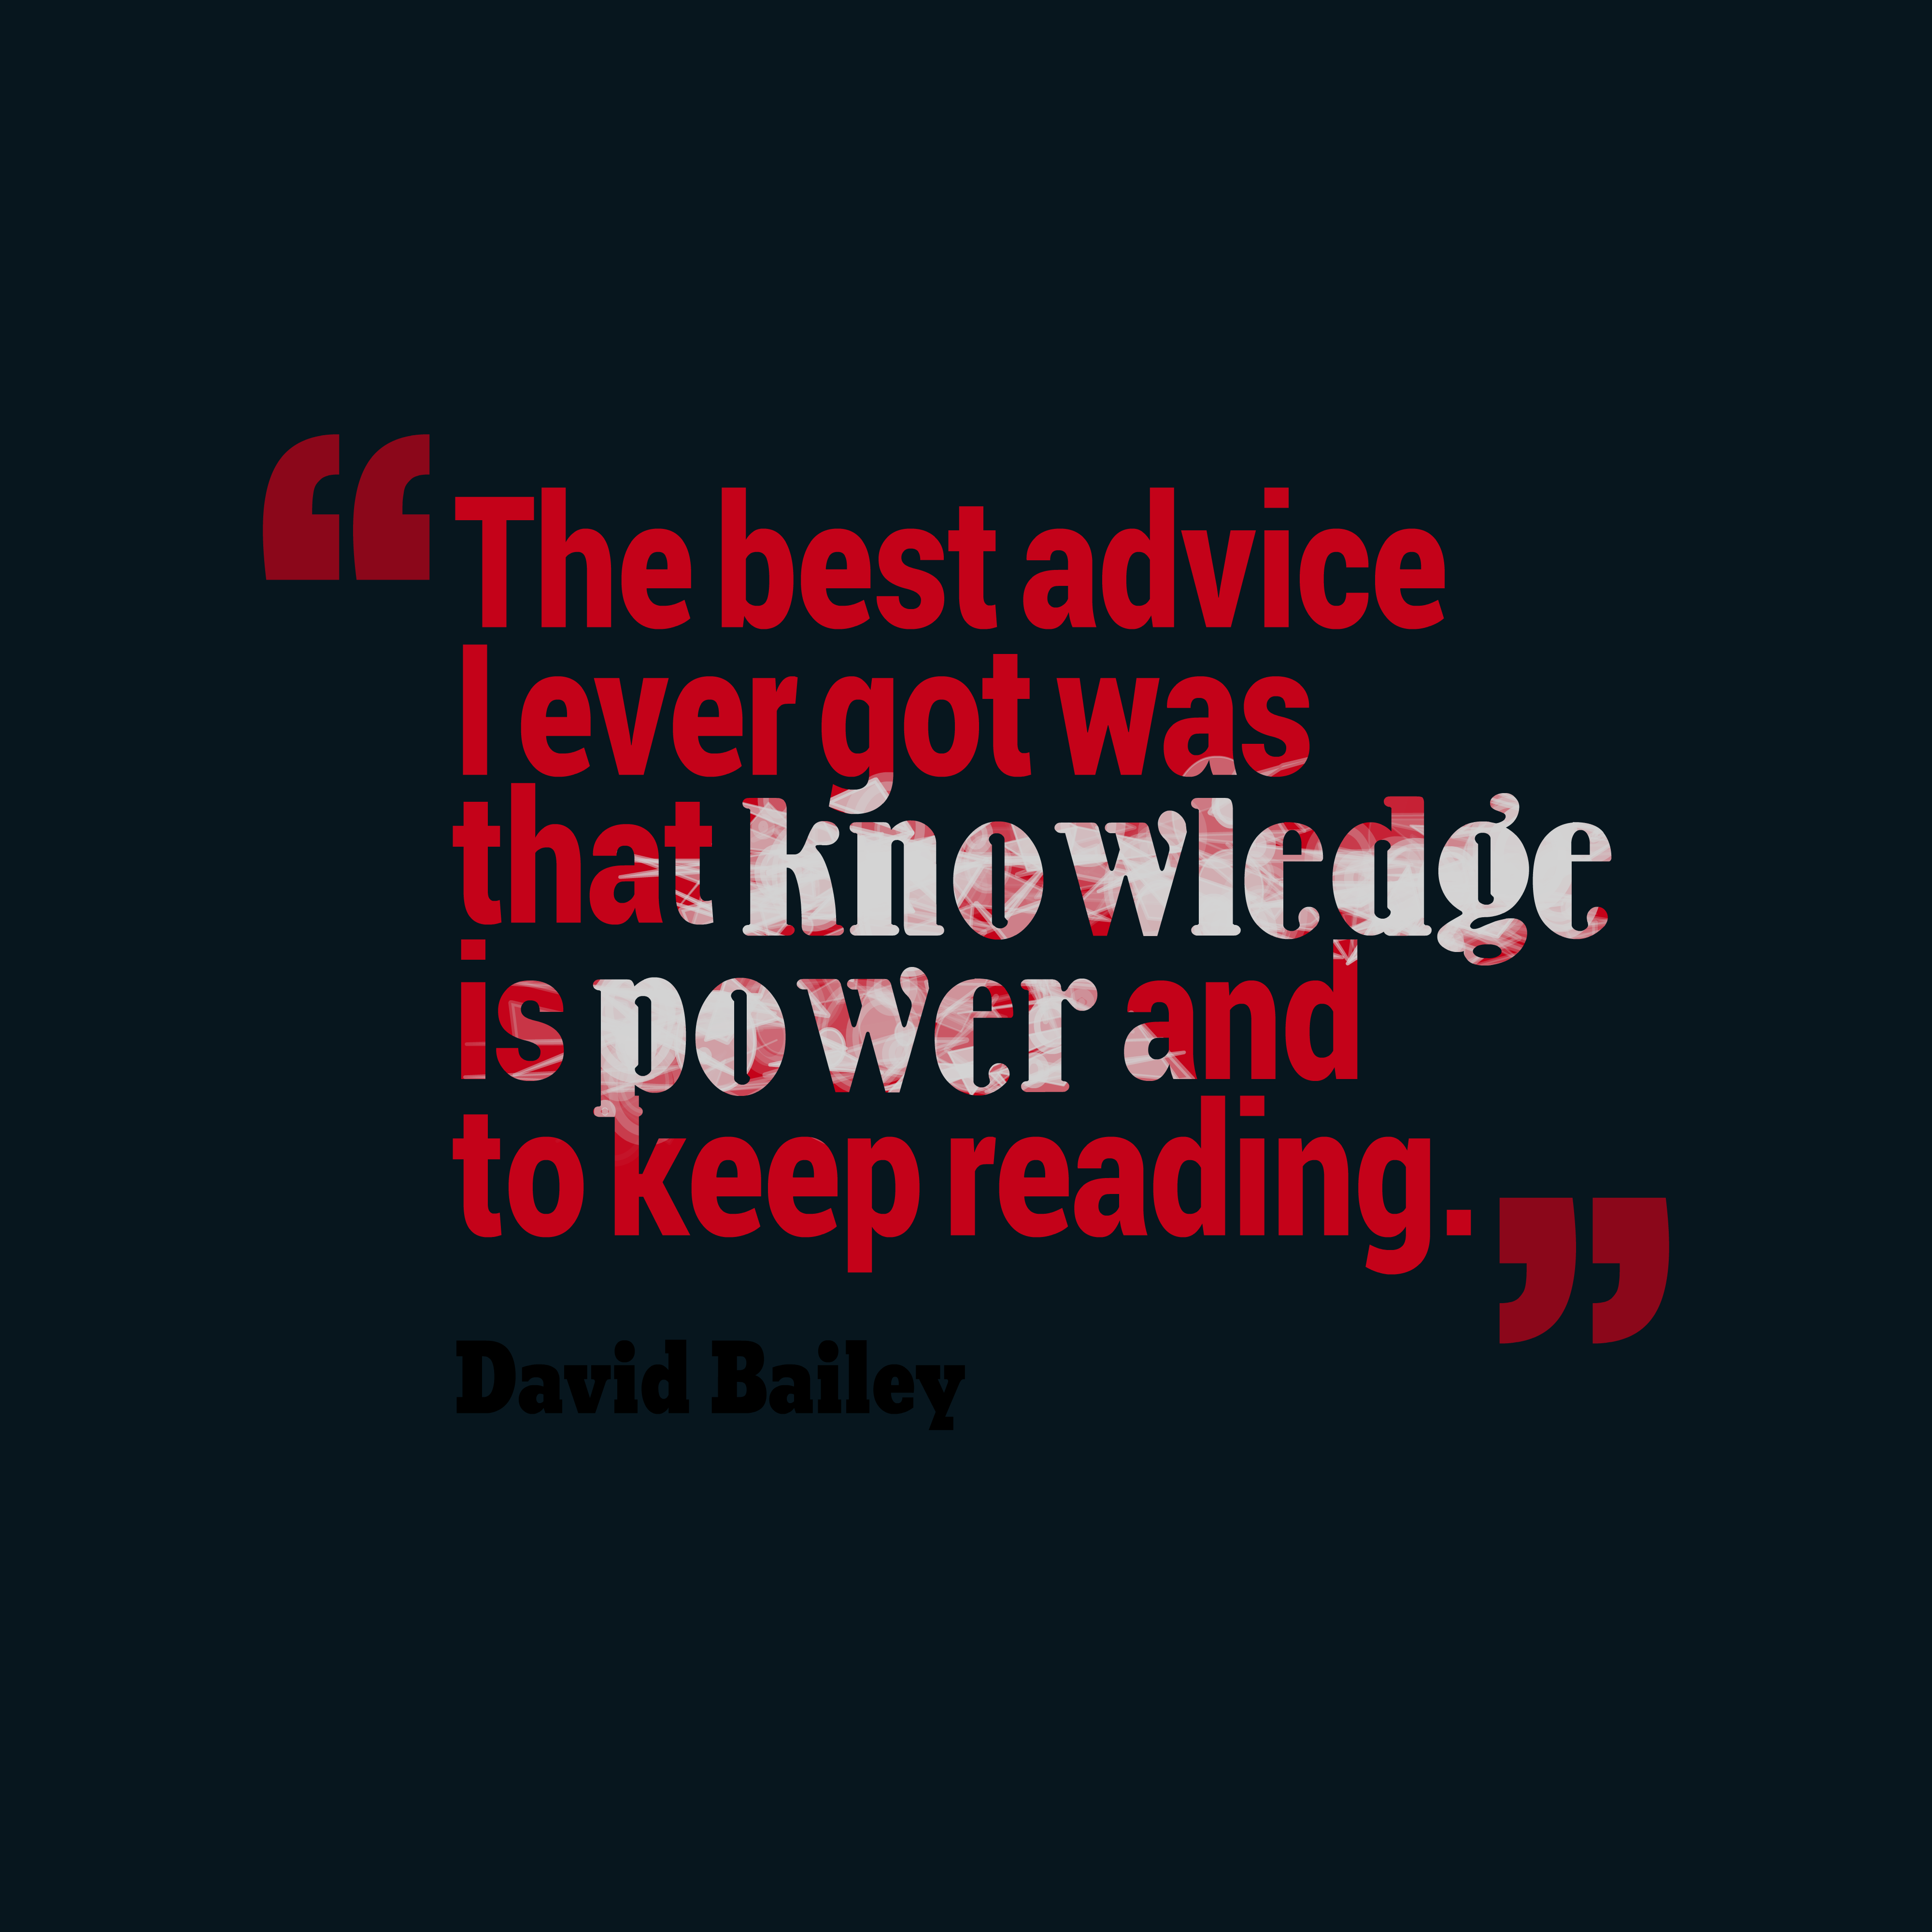 David Bailey Quote About Knowledge